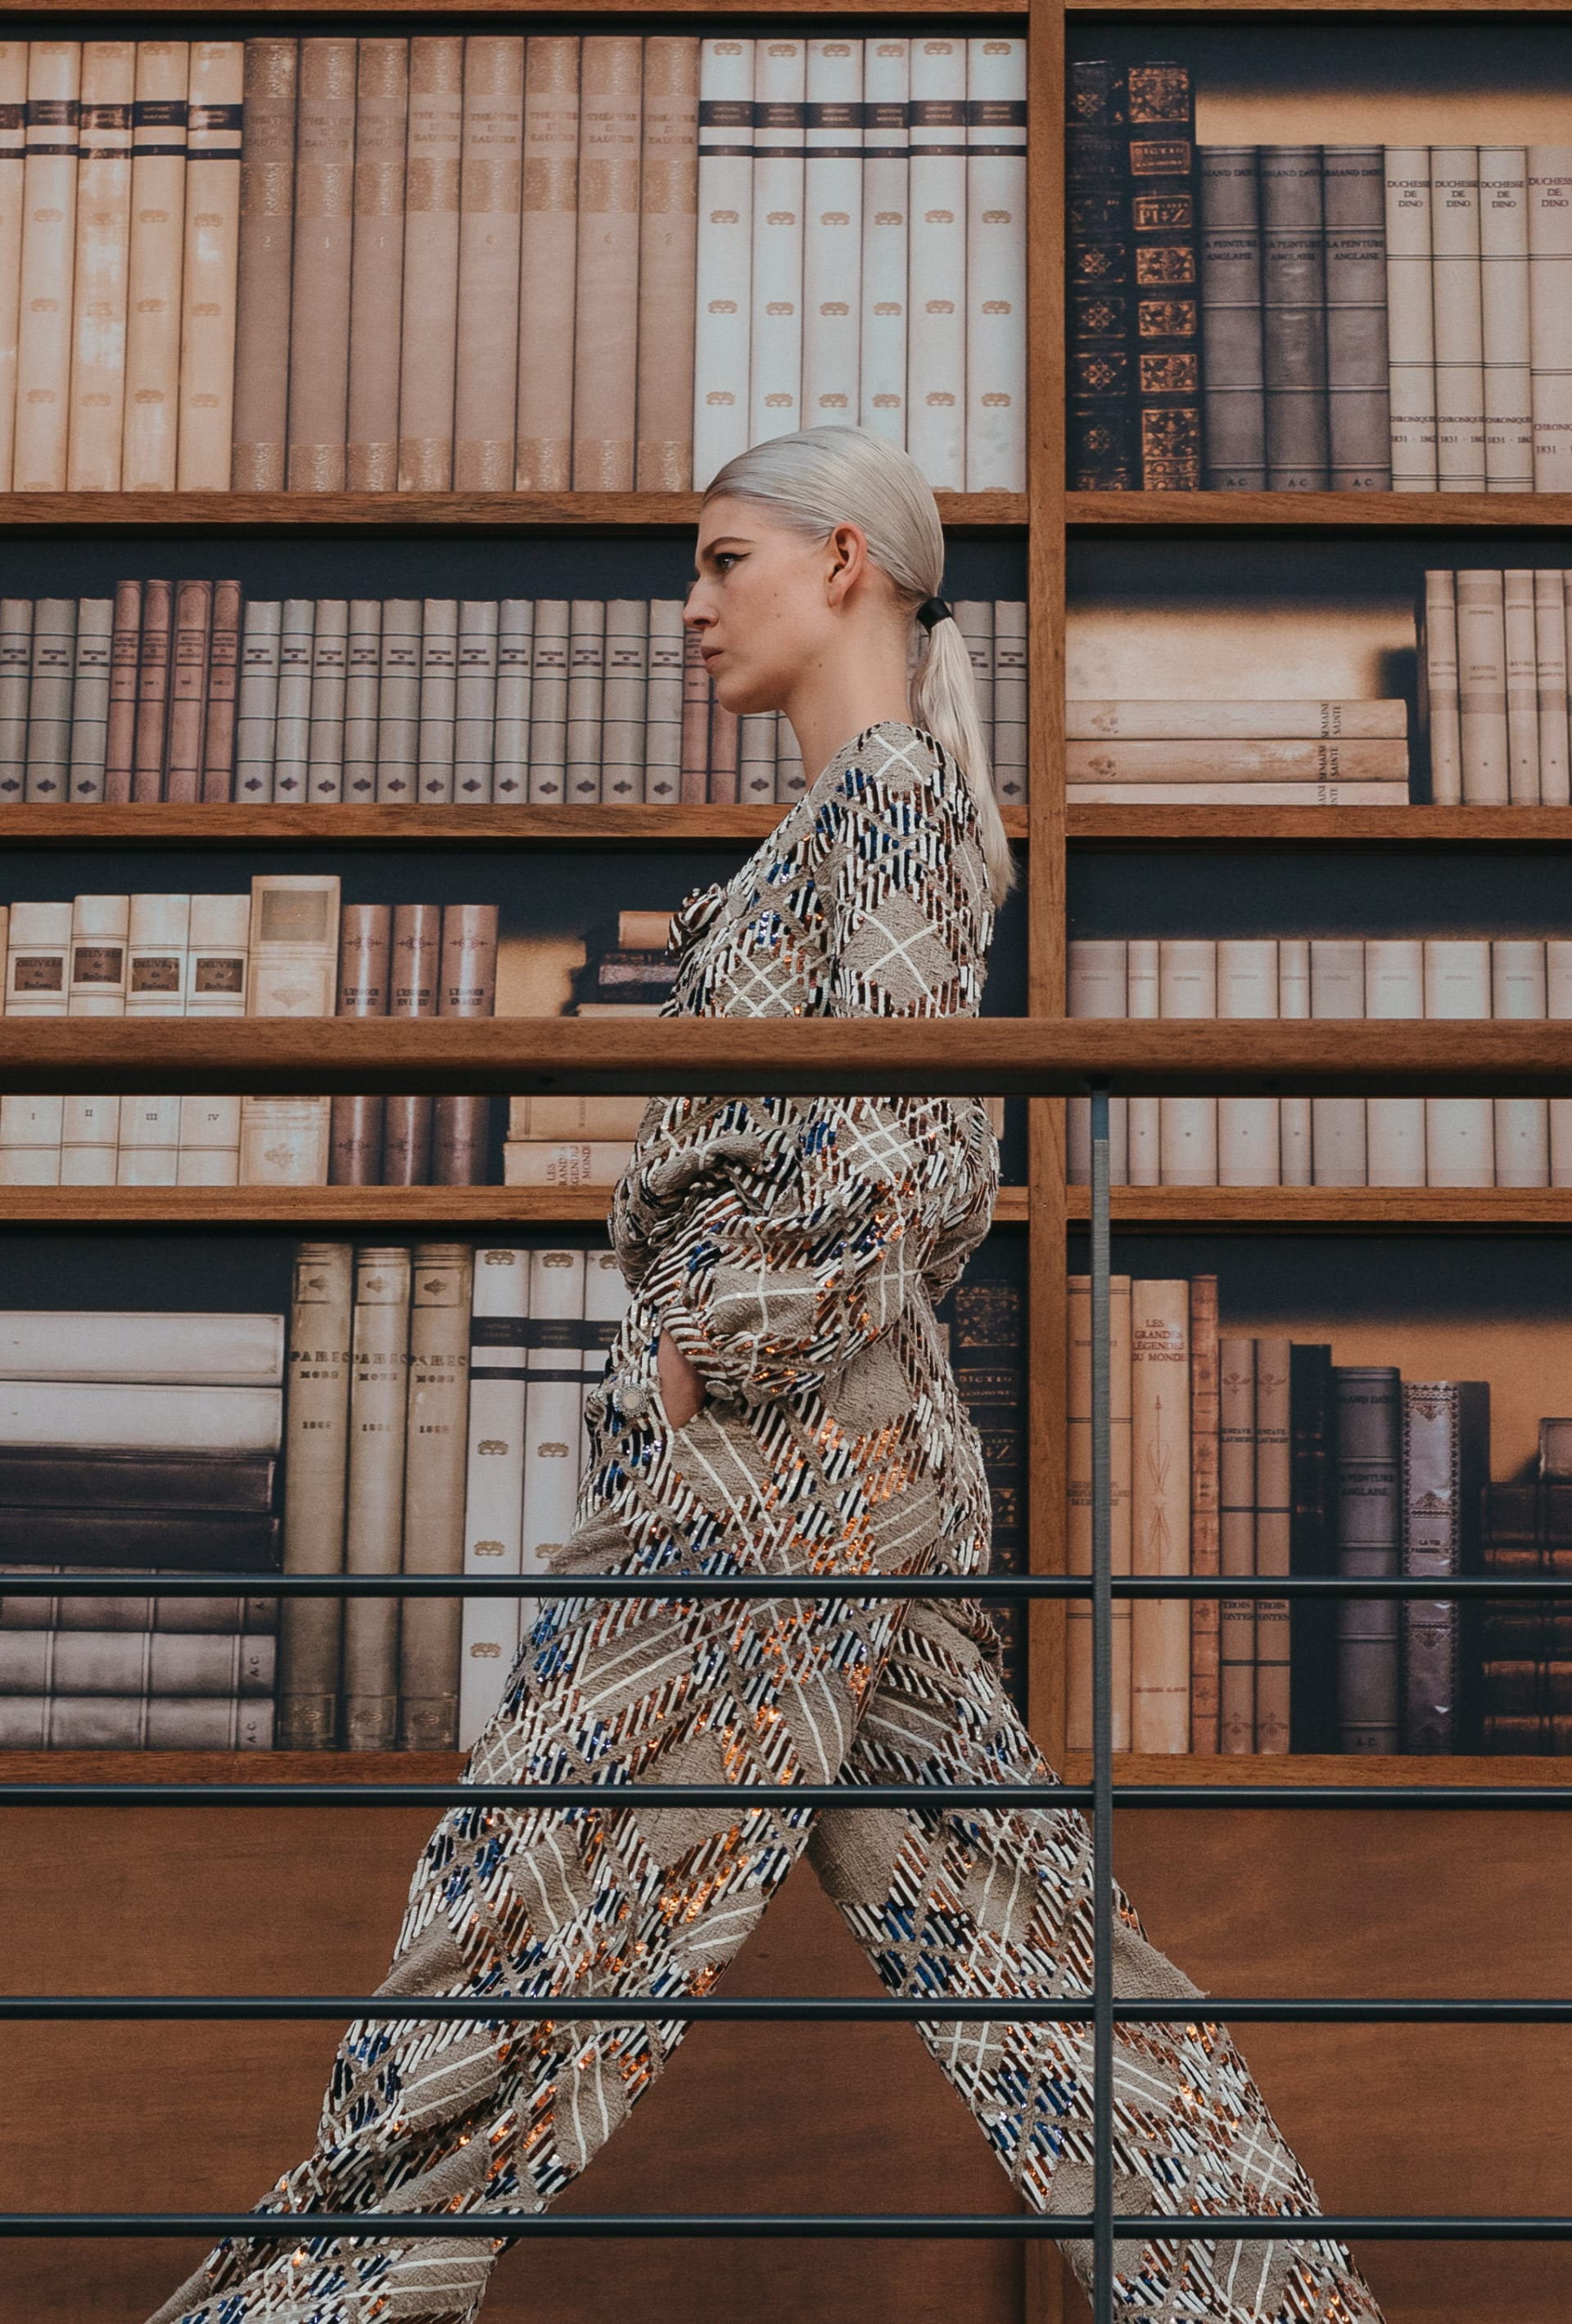 View 2 - Look 23 - Fall-Winter 2019/20 Haute-Couture - see full sized version